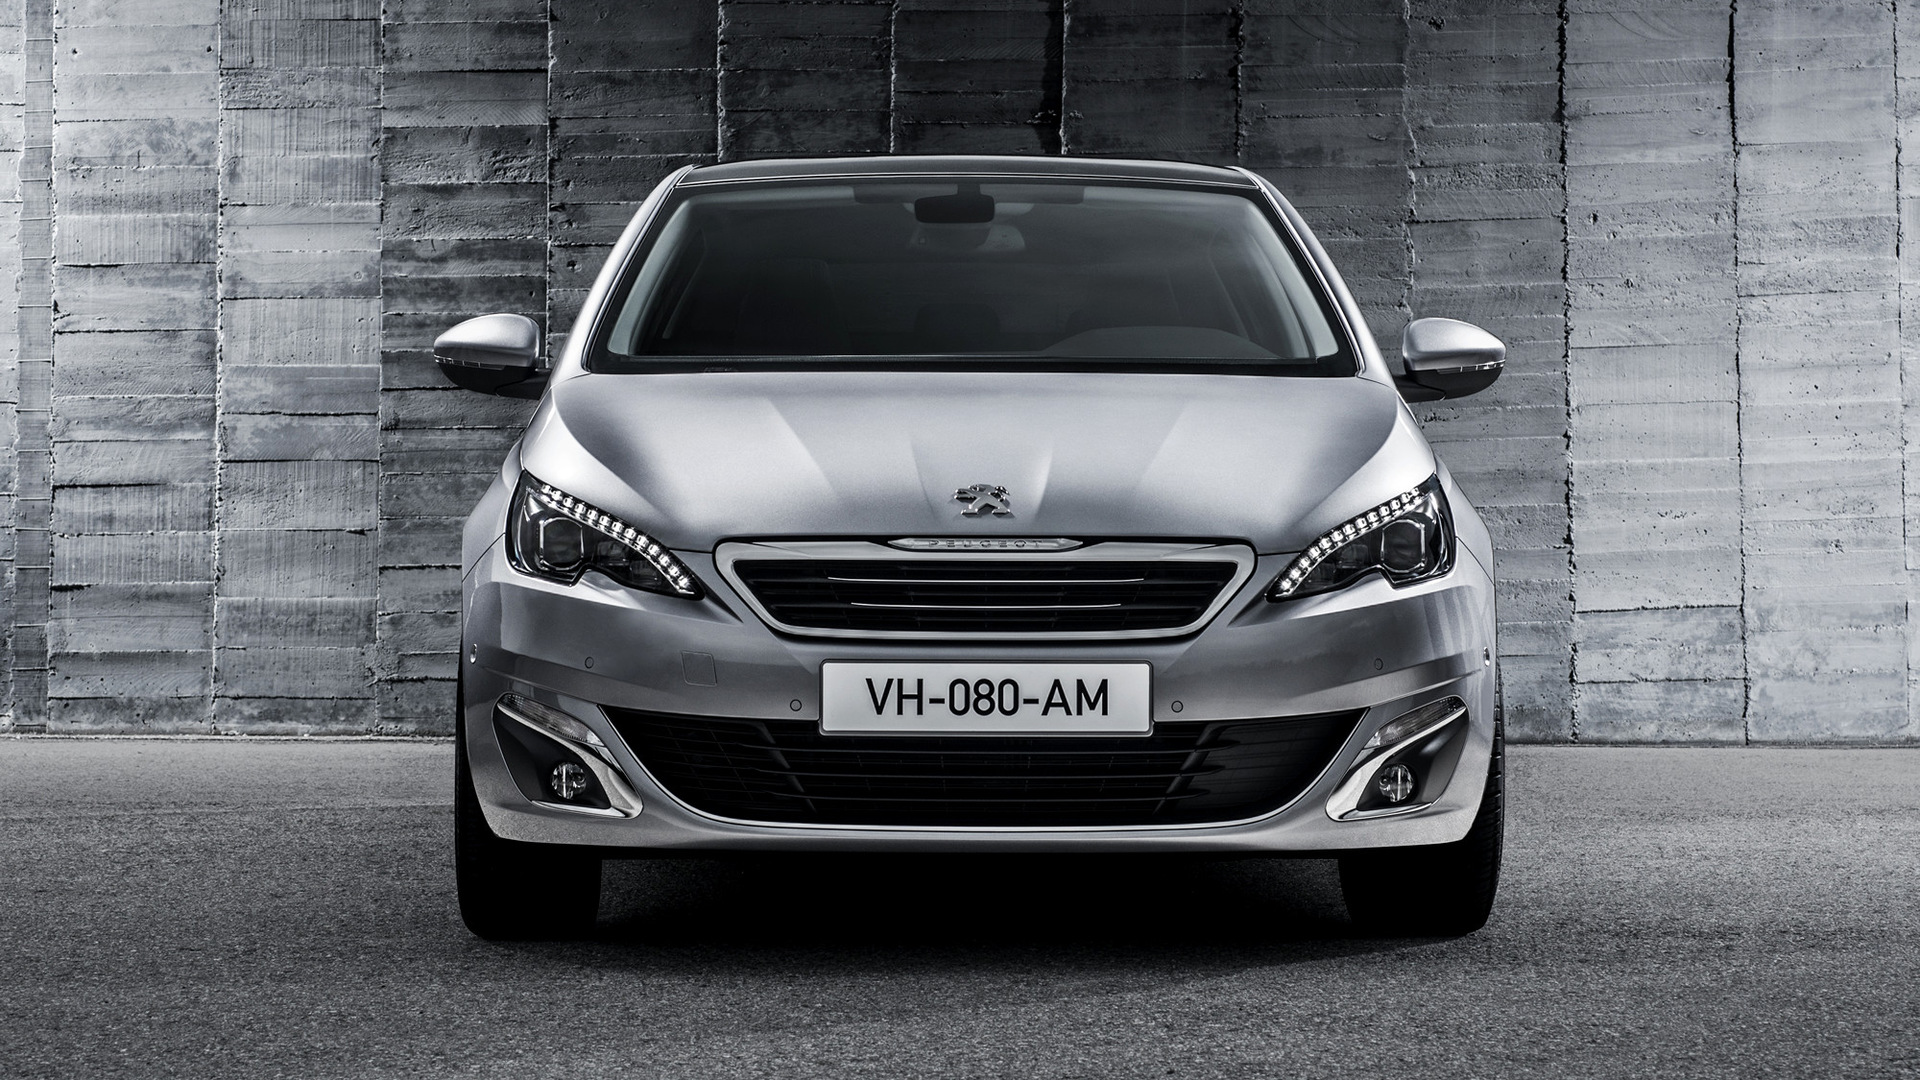 2013 Peugeot 308 Wallpapers And Hd Images Car Pixel